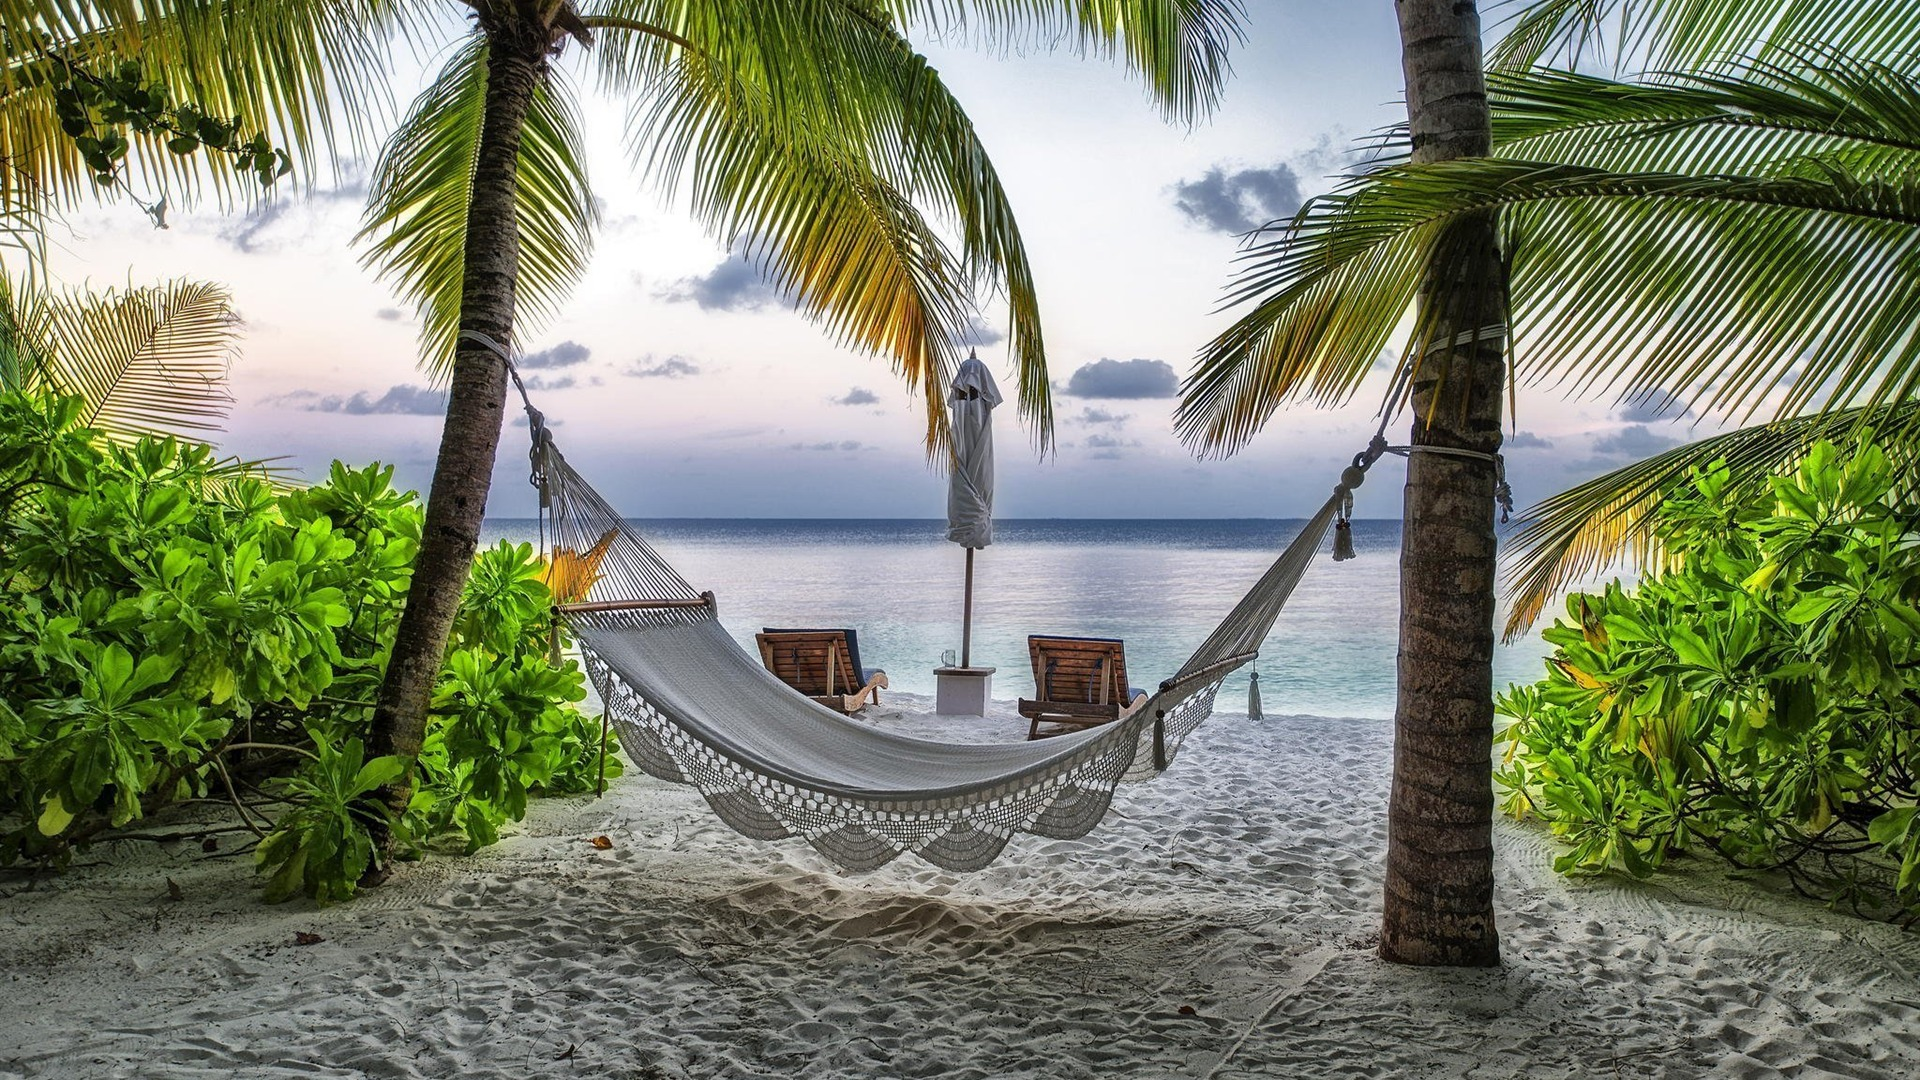 Hammock on Beach-Desktop Wallpaper - 1920x1080 download ...